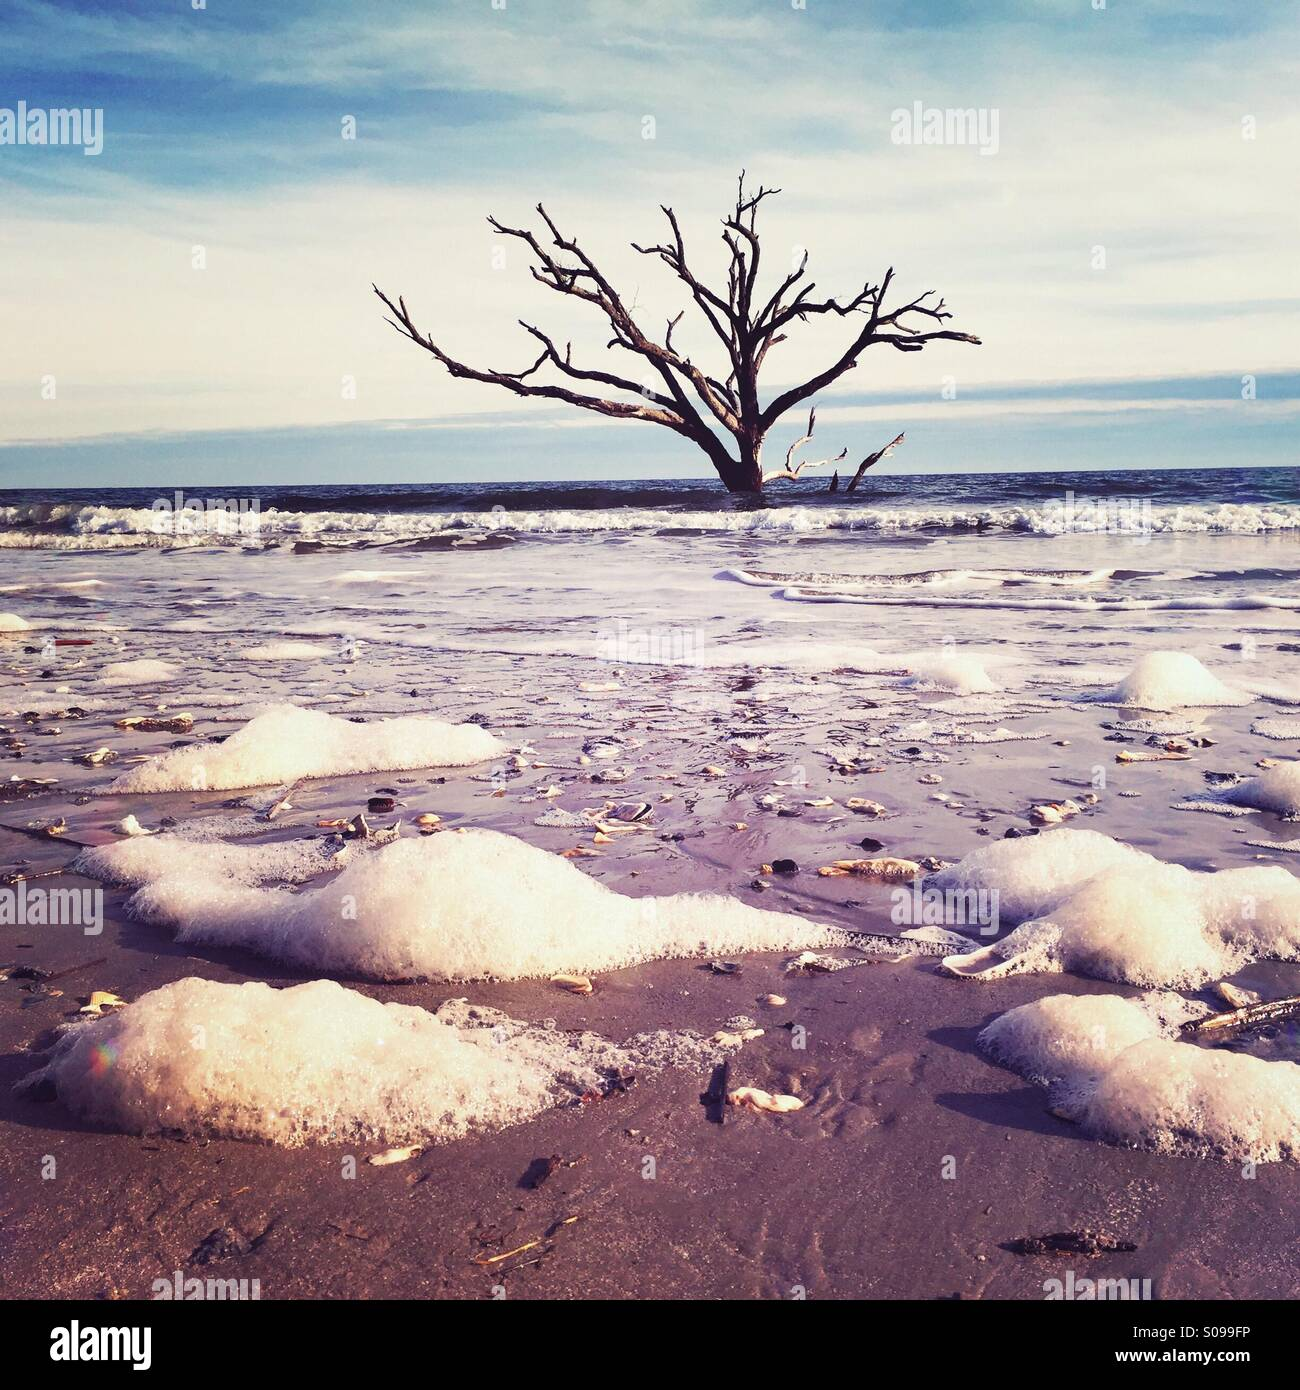 A lone dead tree  stands in the surf at Botany Bay on Edisto Island, SC. - Stock Image